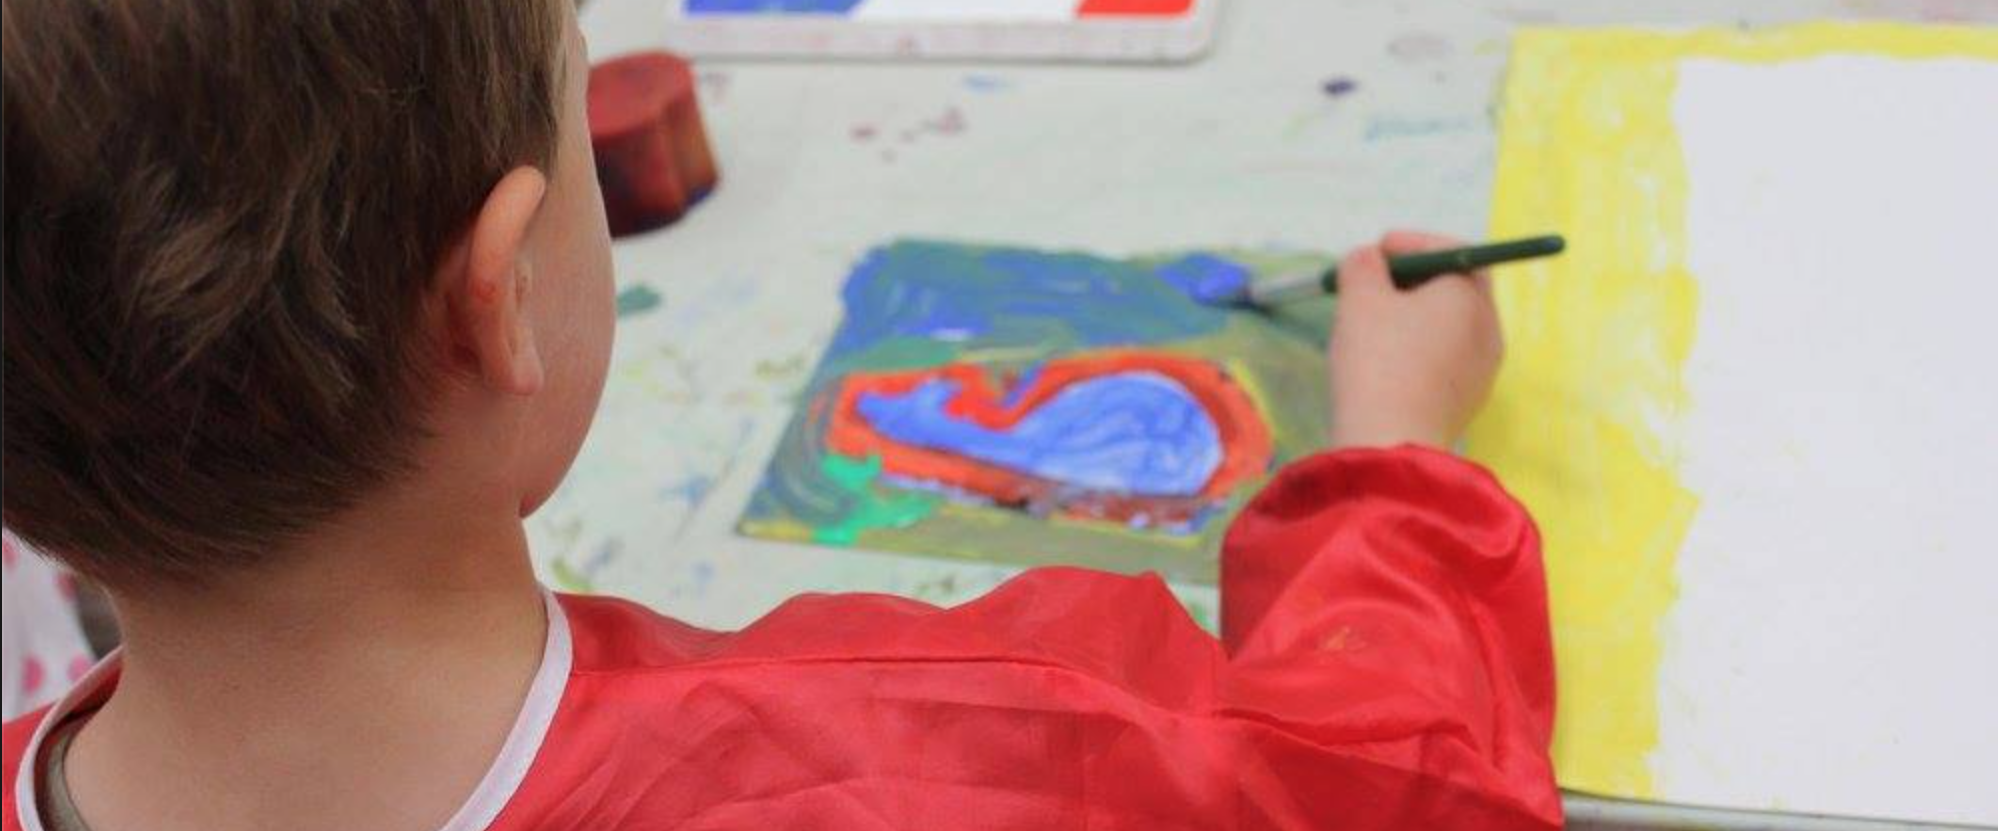 Arts & Learning Programs